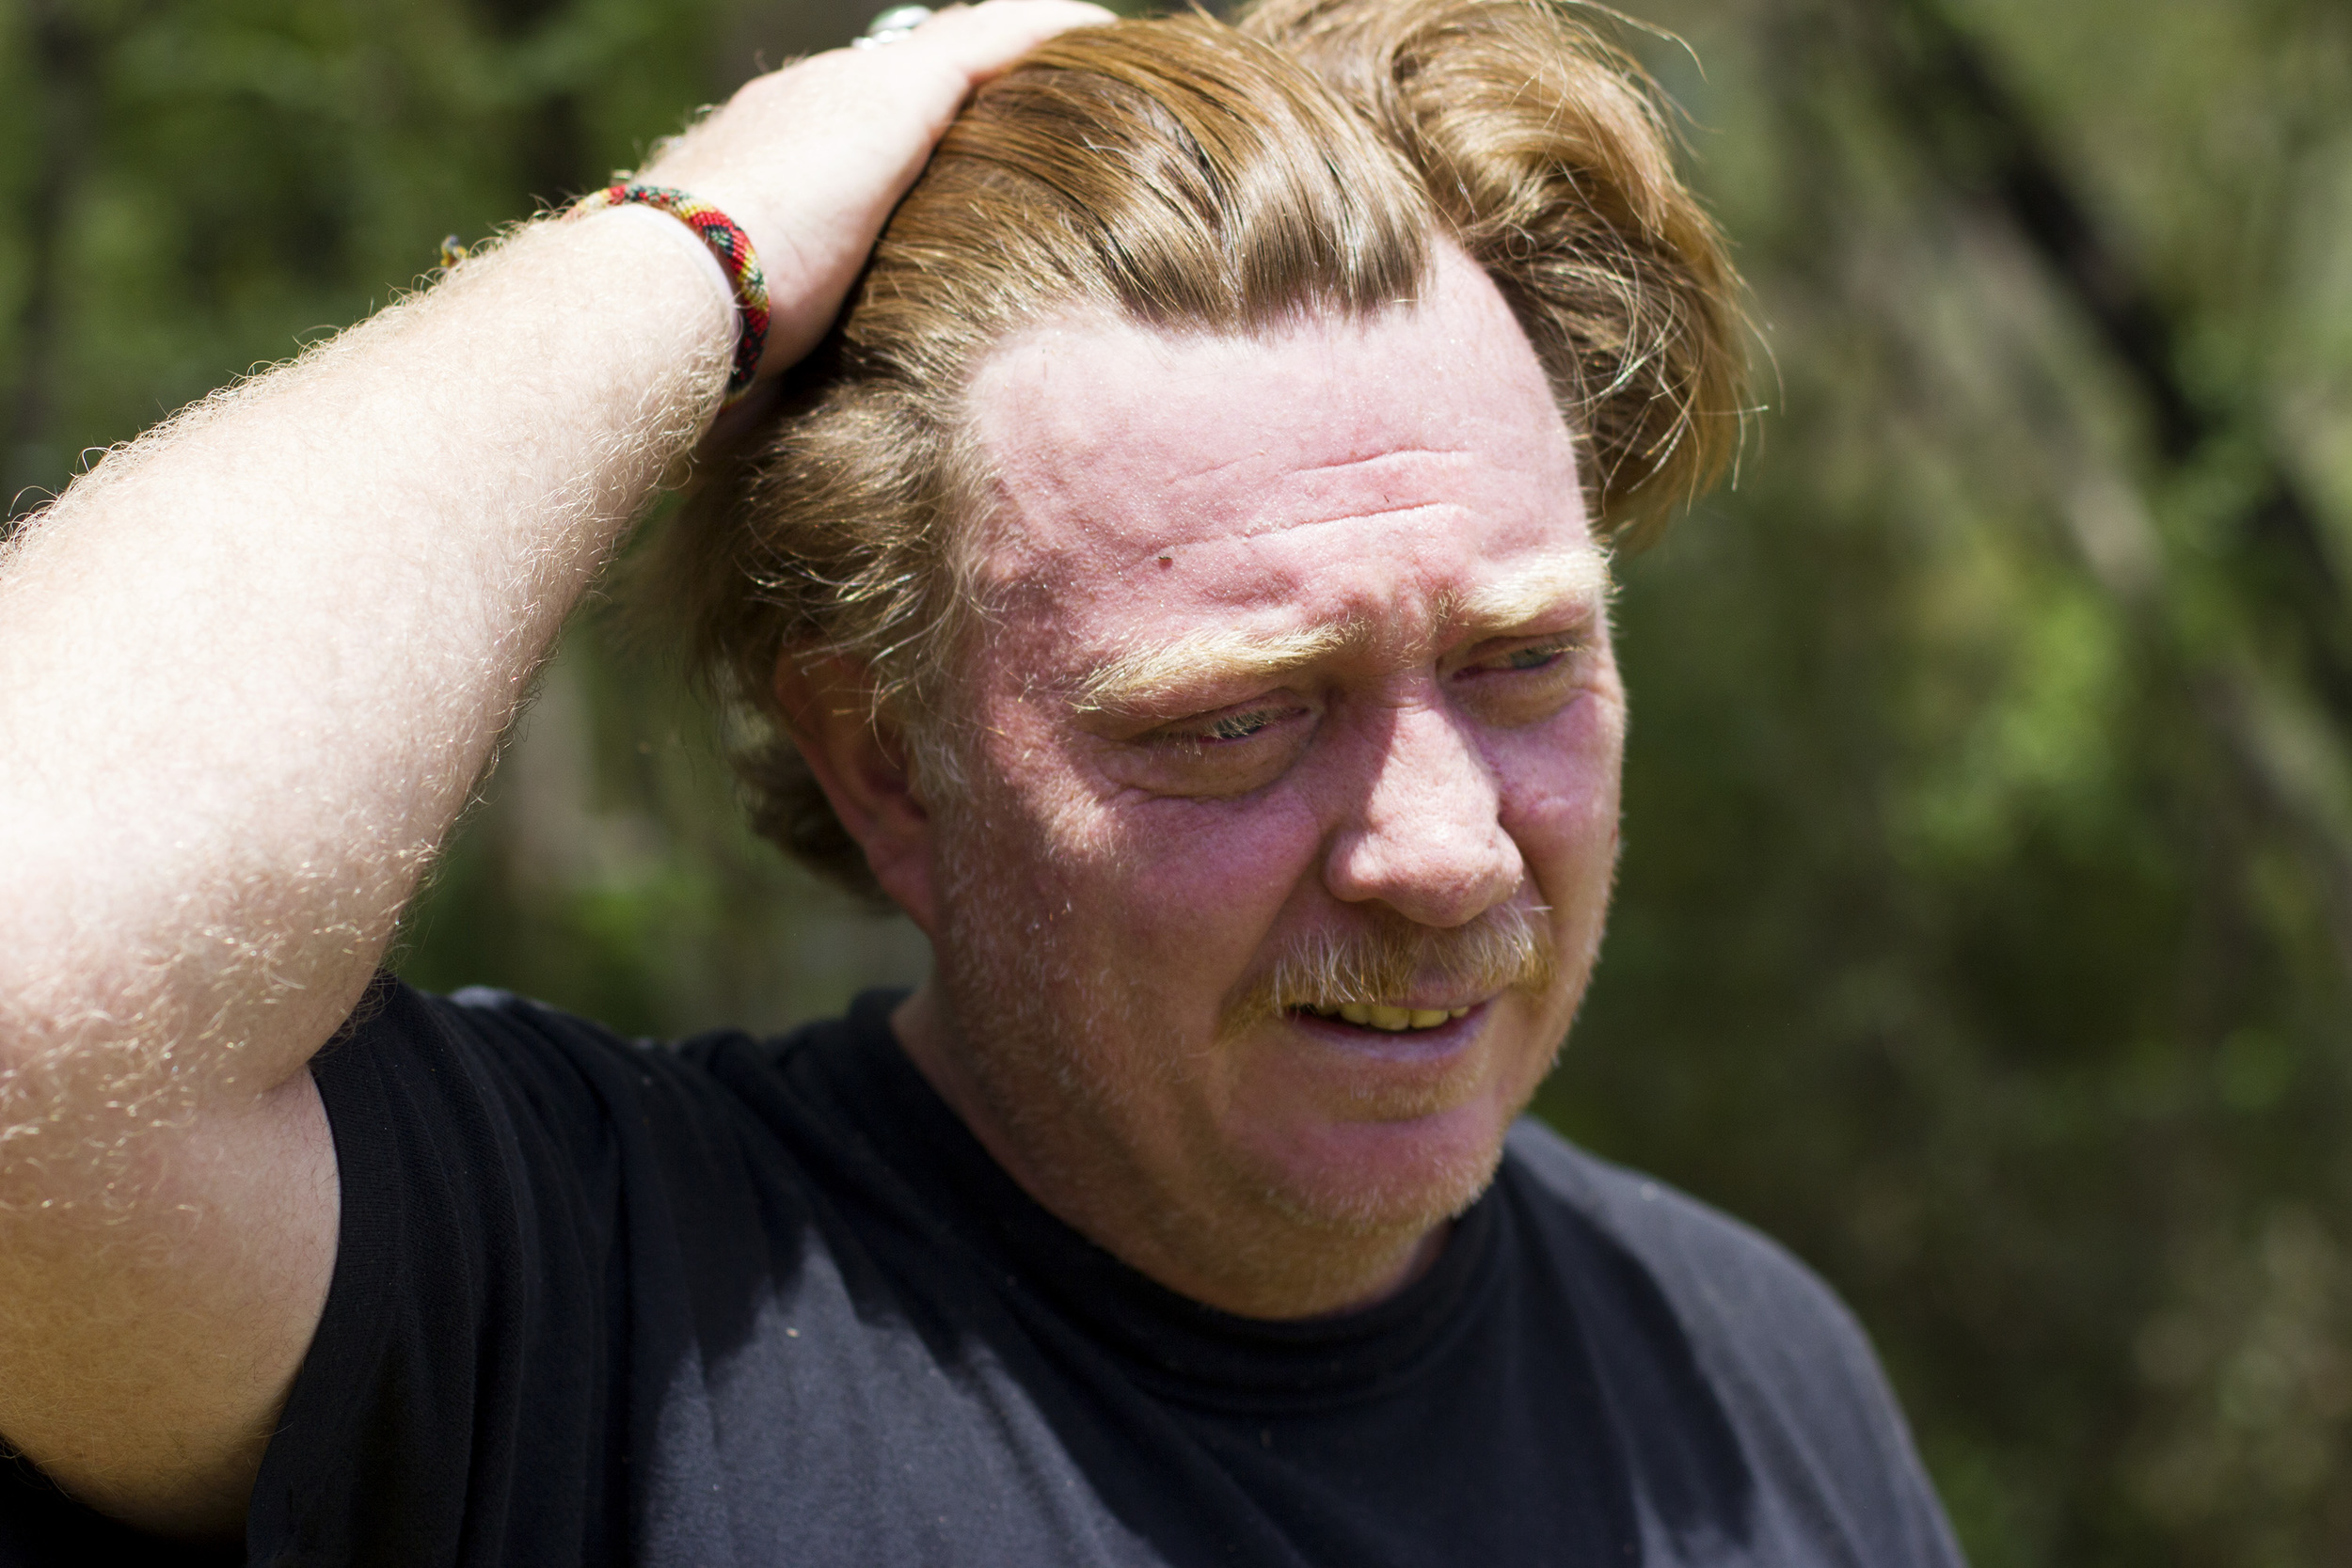 Virgil Edwards pushes his hair back after working for several hours in the heat and humidity of Chiapas, Mexico.Almost every day he prunes up to 10 trees, and he has a goal of planting 1,500 trees to make up for the ones he lost.